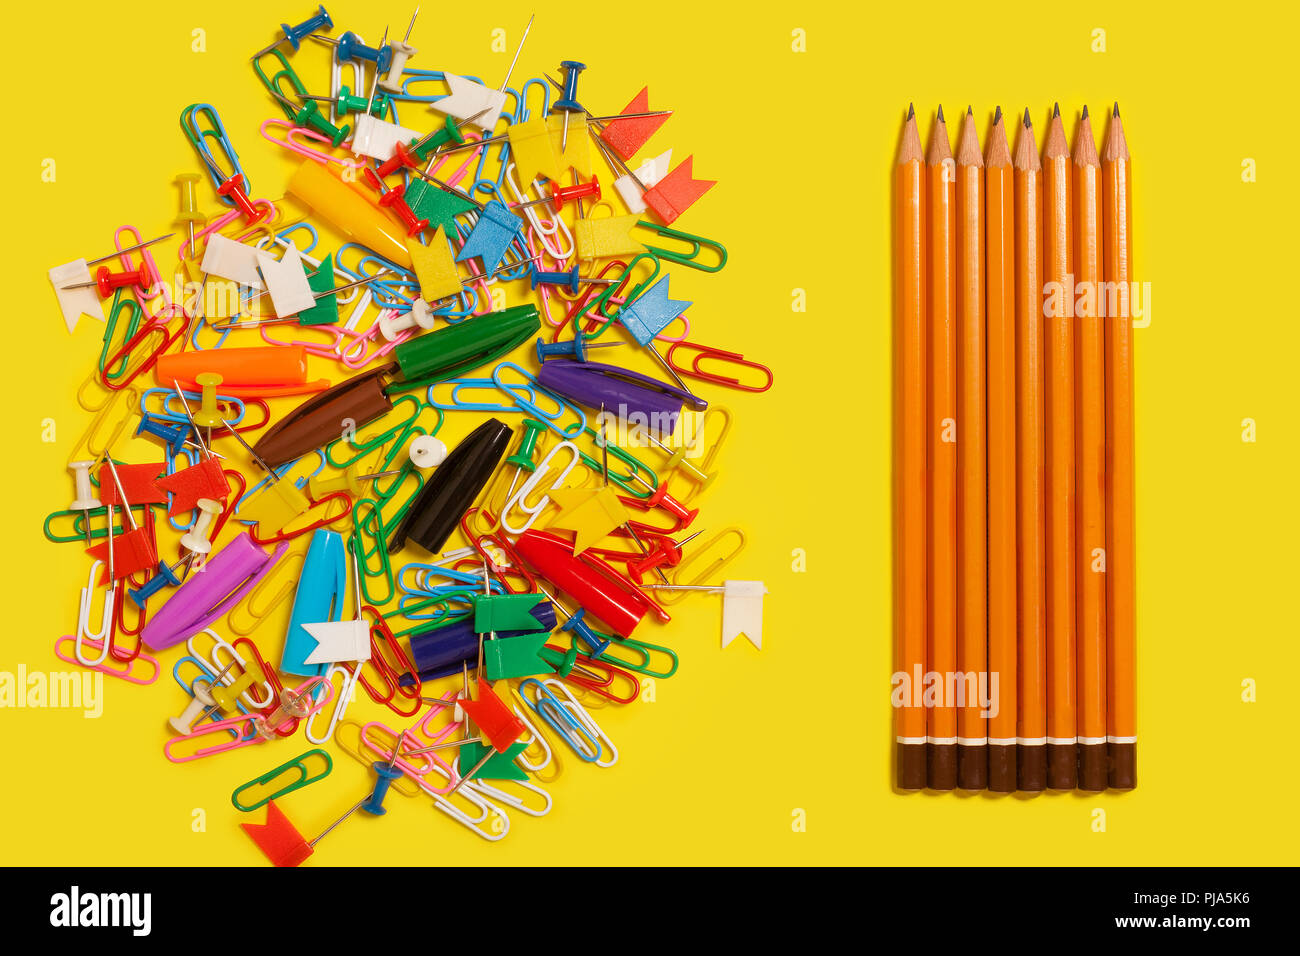 paper clips, pushpins and pen caps near a row of pencils - Stock Image